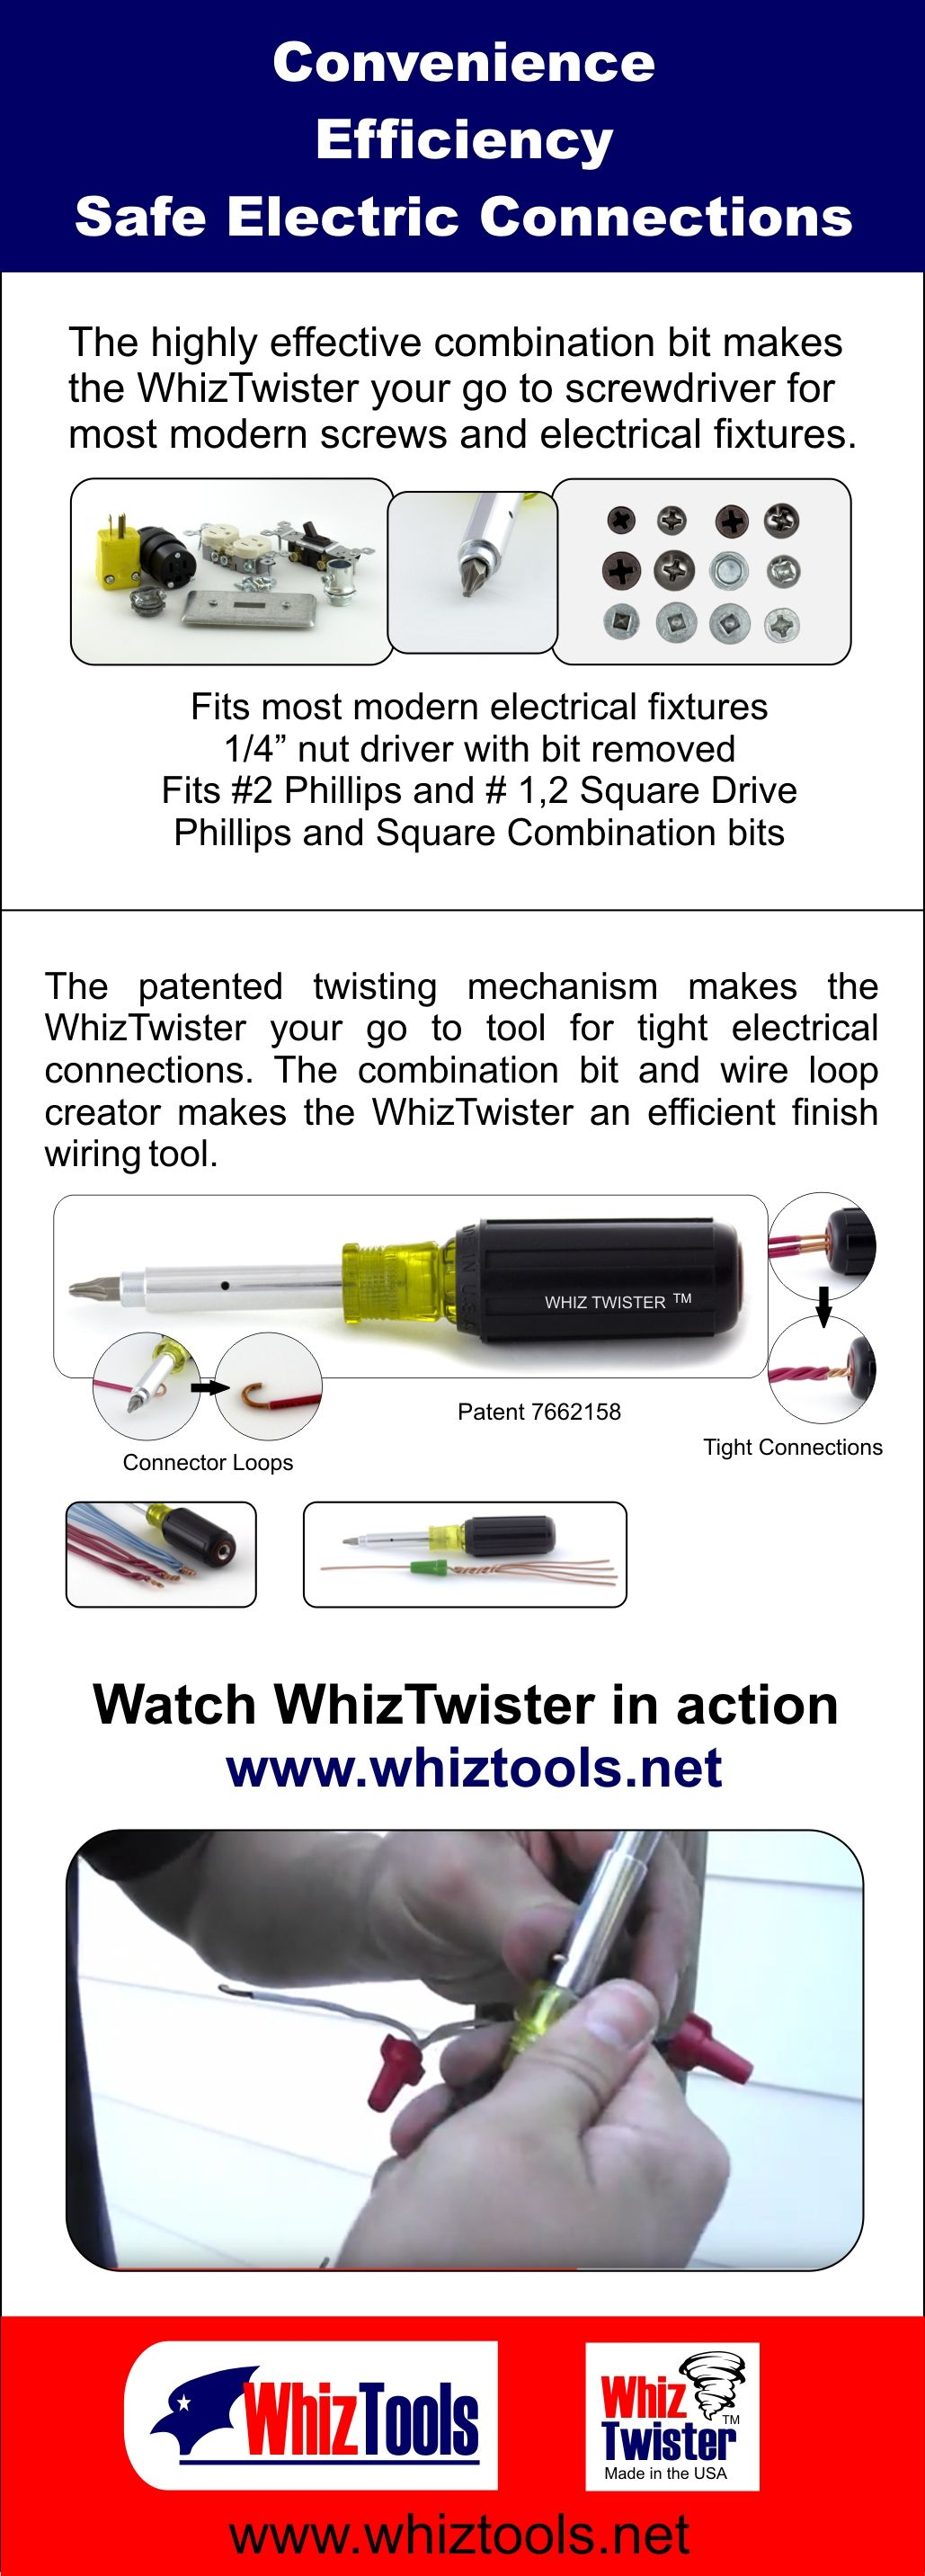 The WhizTwister is designed to be convenient for general screwdriver use and efficient as a general electrical wiring tool.